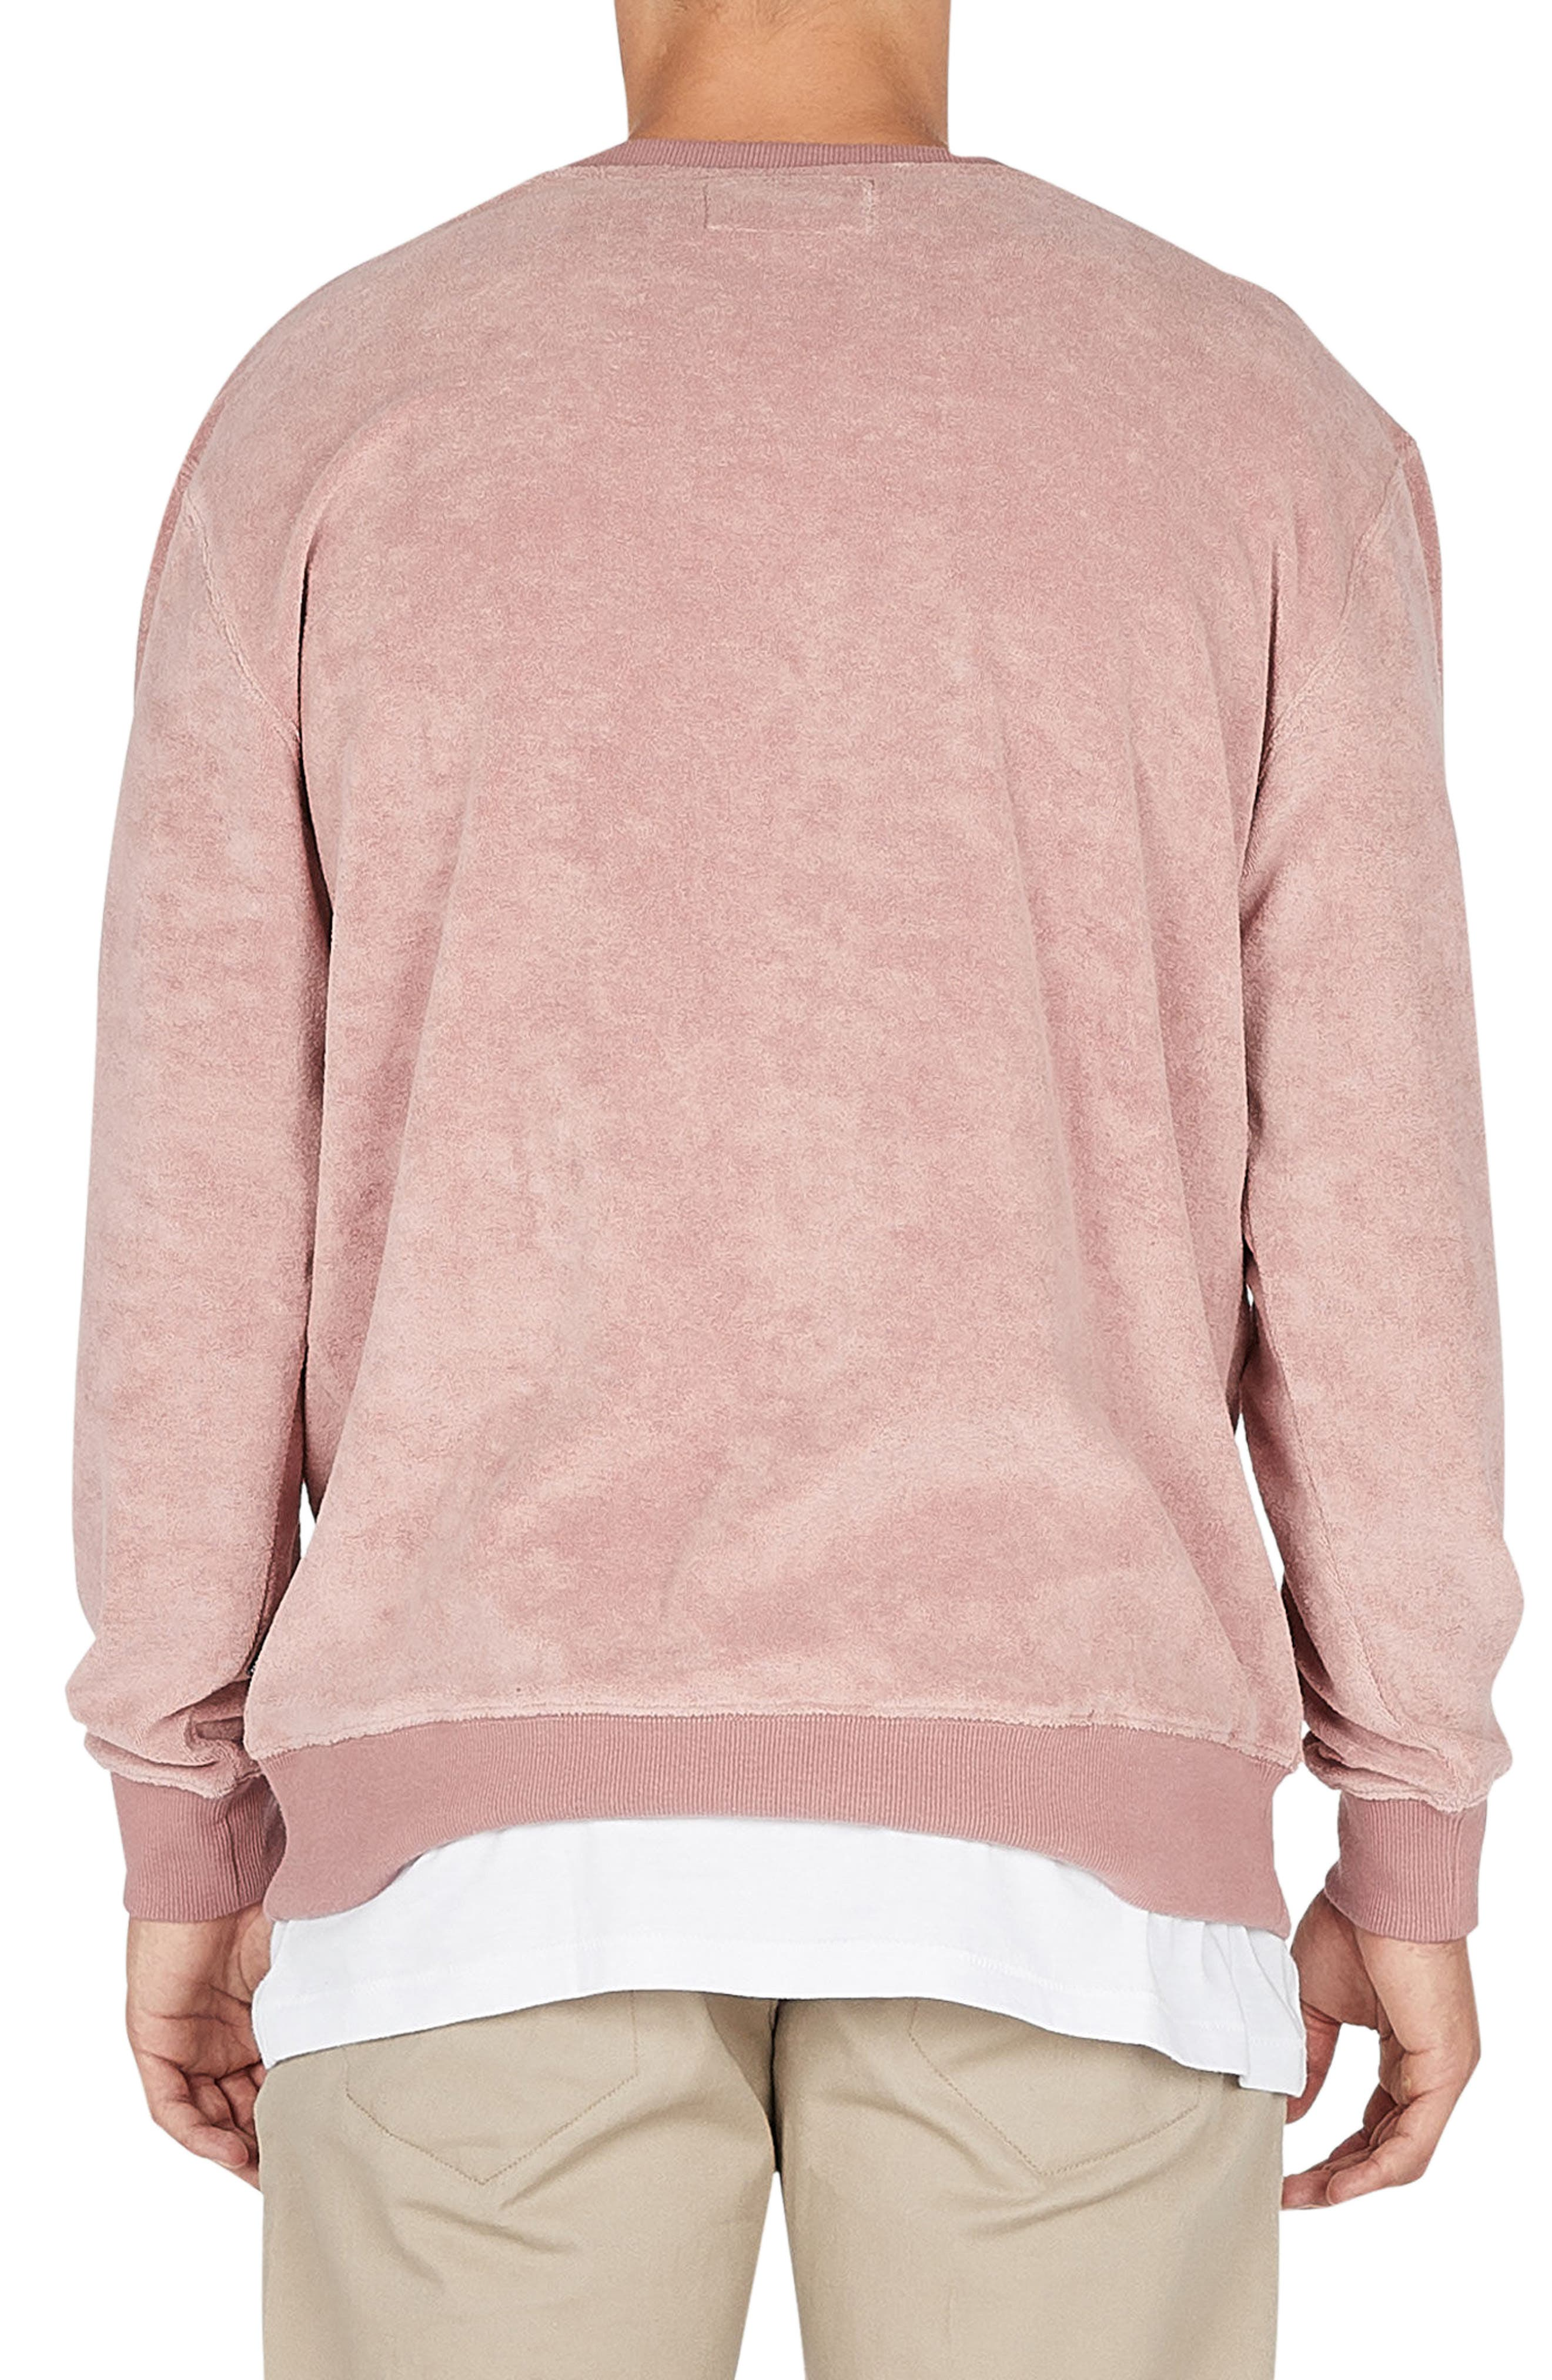 Terry Sweatshirt,                             Alternate thumbnail 2, color,                             Rose